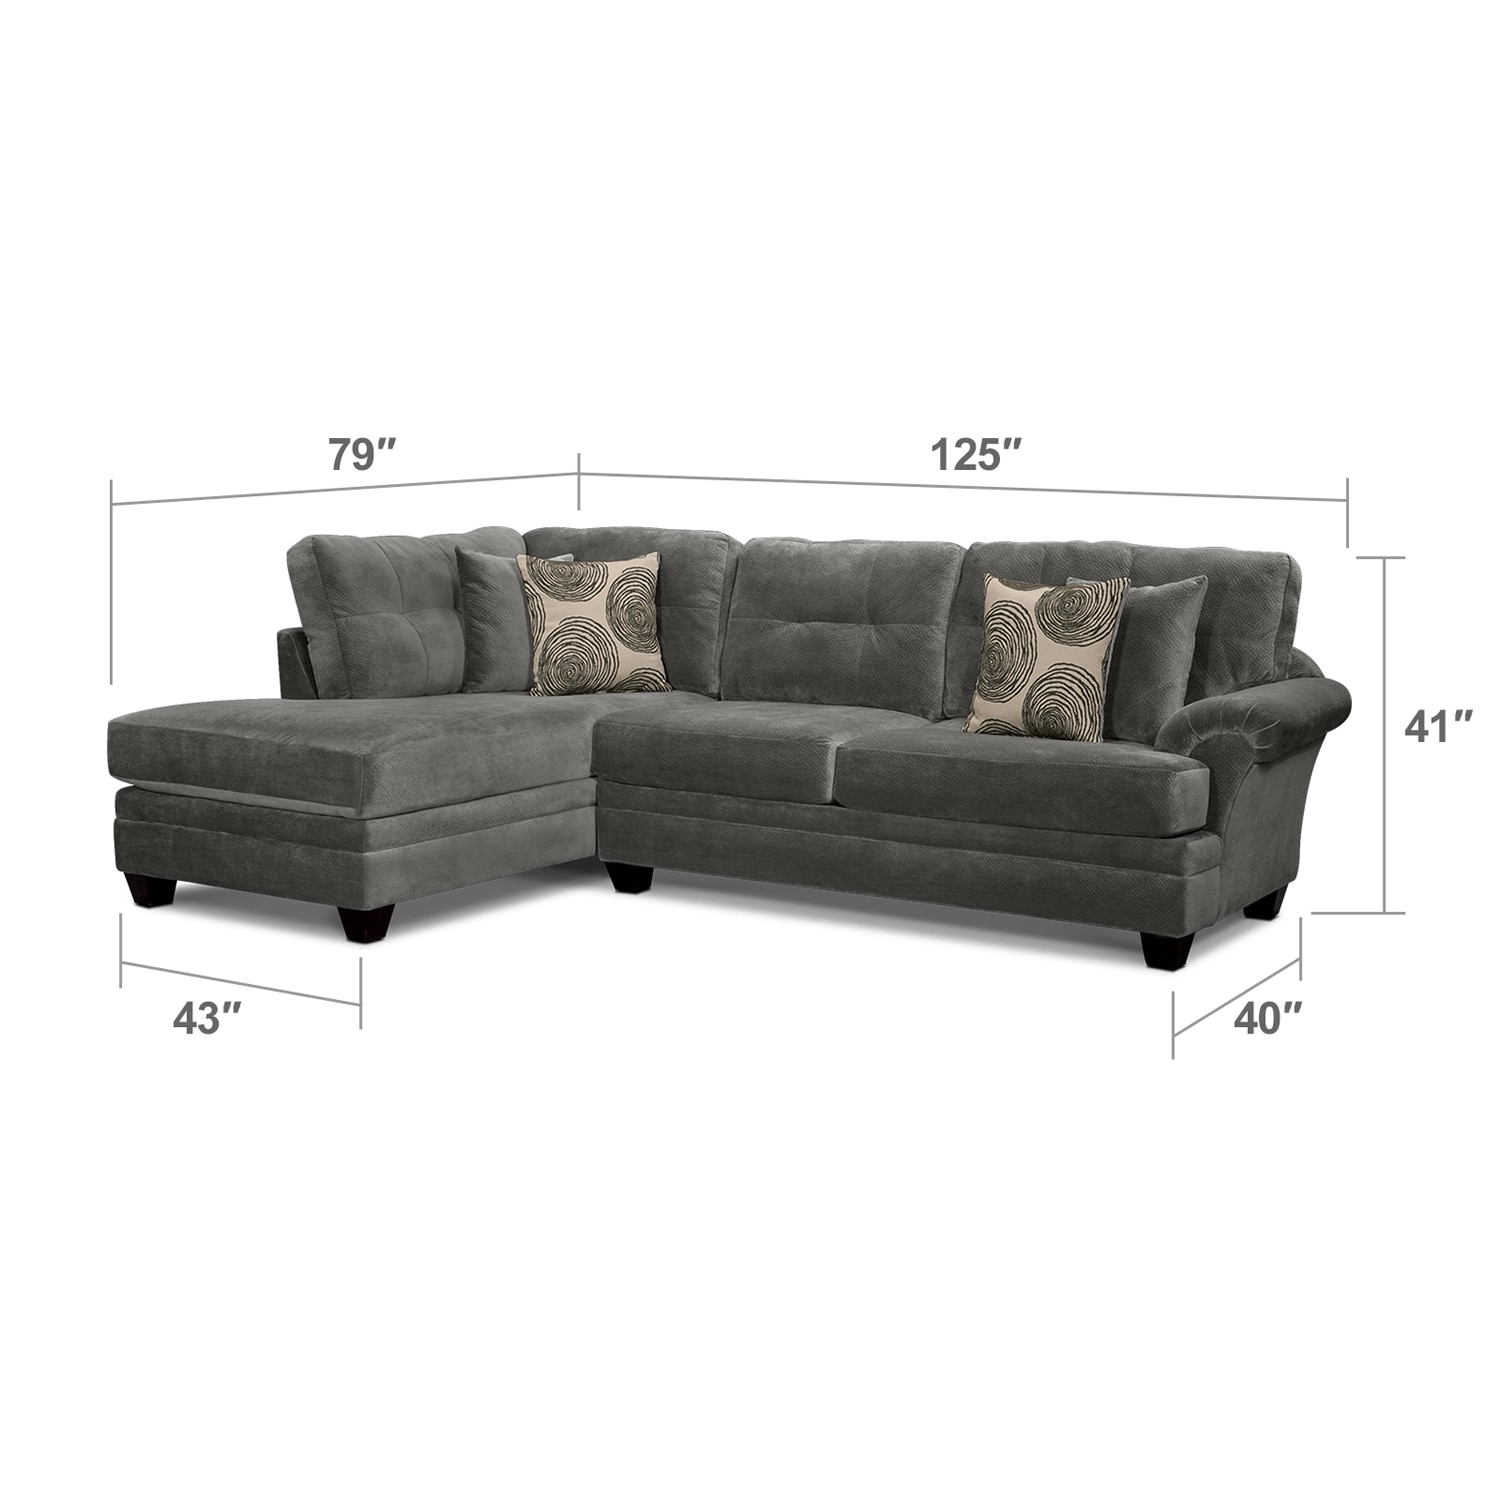 Cordelle 2 piece left facing chaise sectional gray for 2 piece chaise sectional